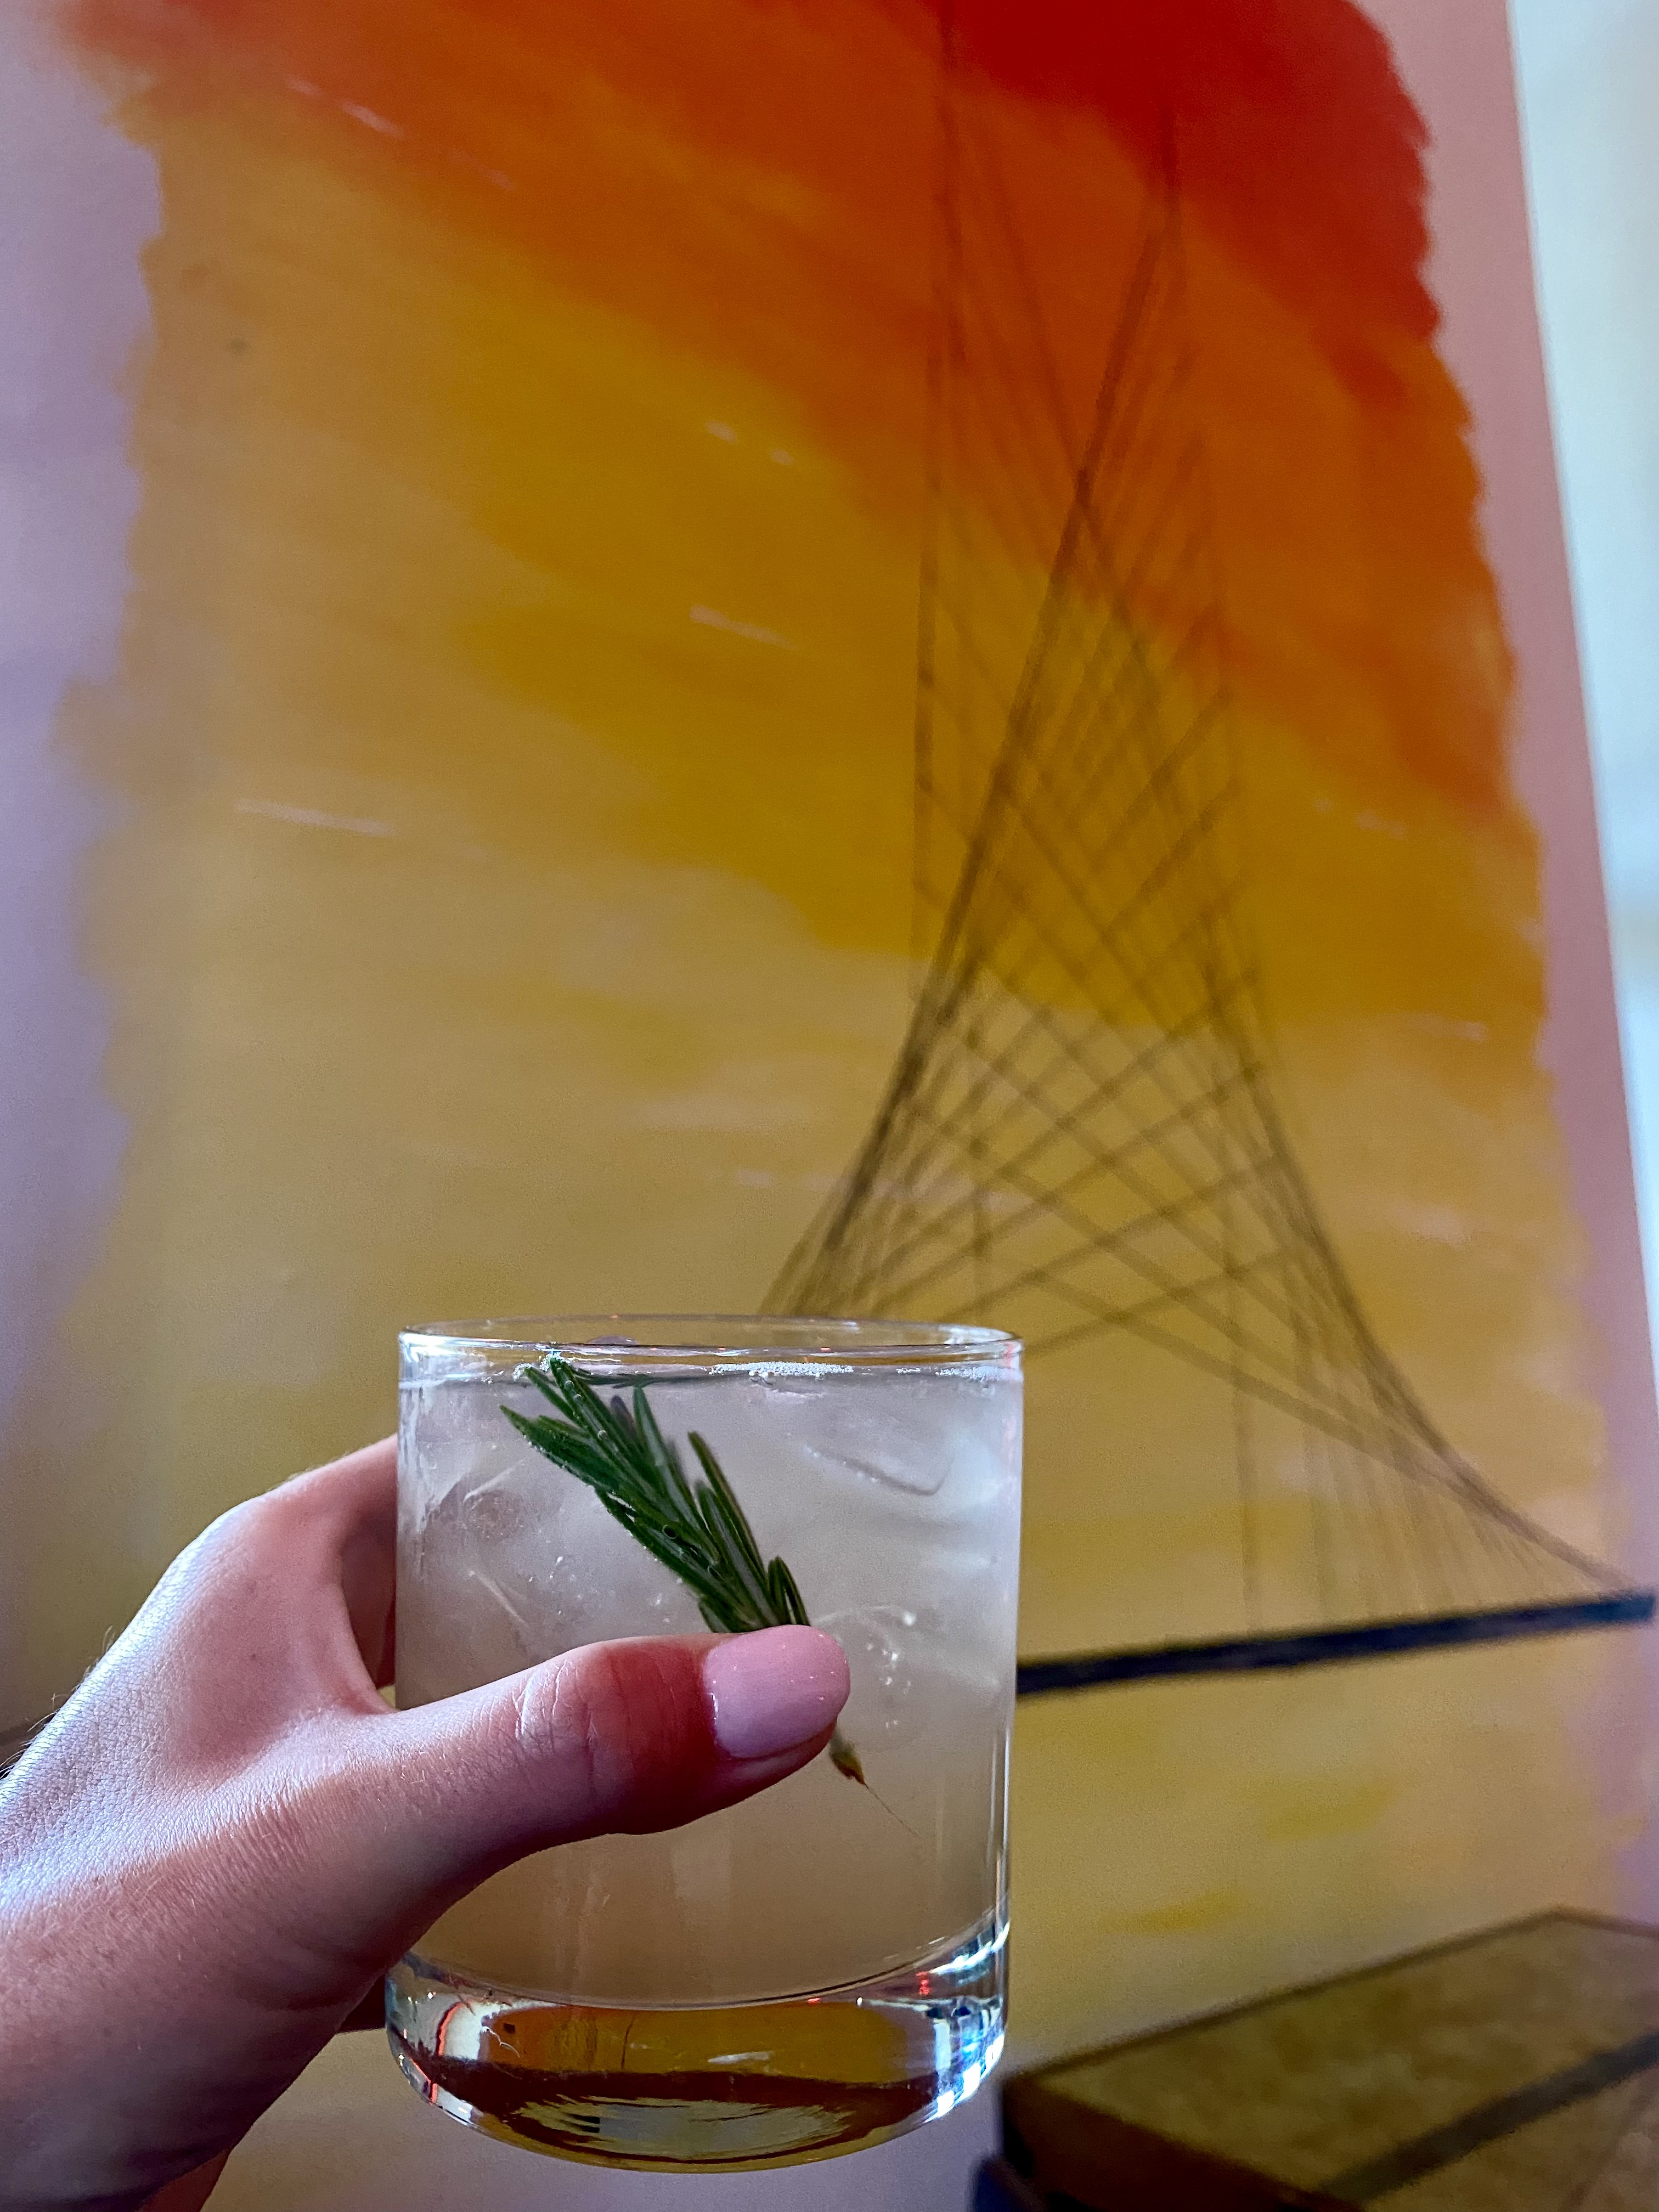 a manicured hand holding a rosemary gimlet cocktail in front of an orange and yellow modernist painting